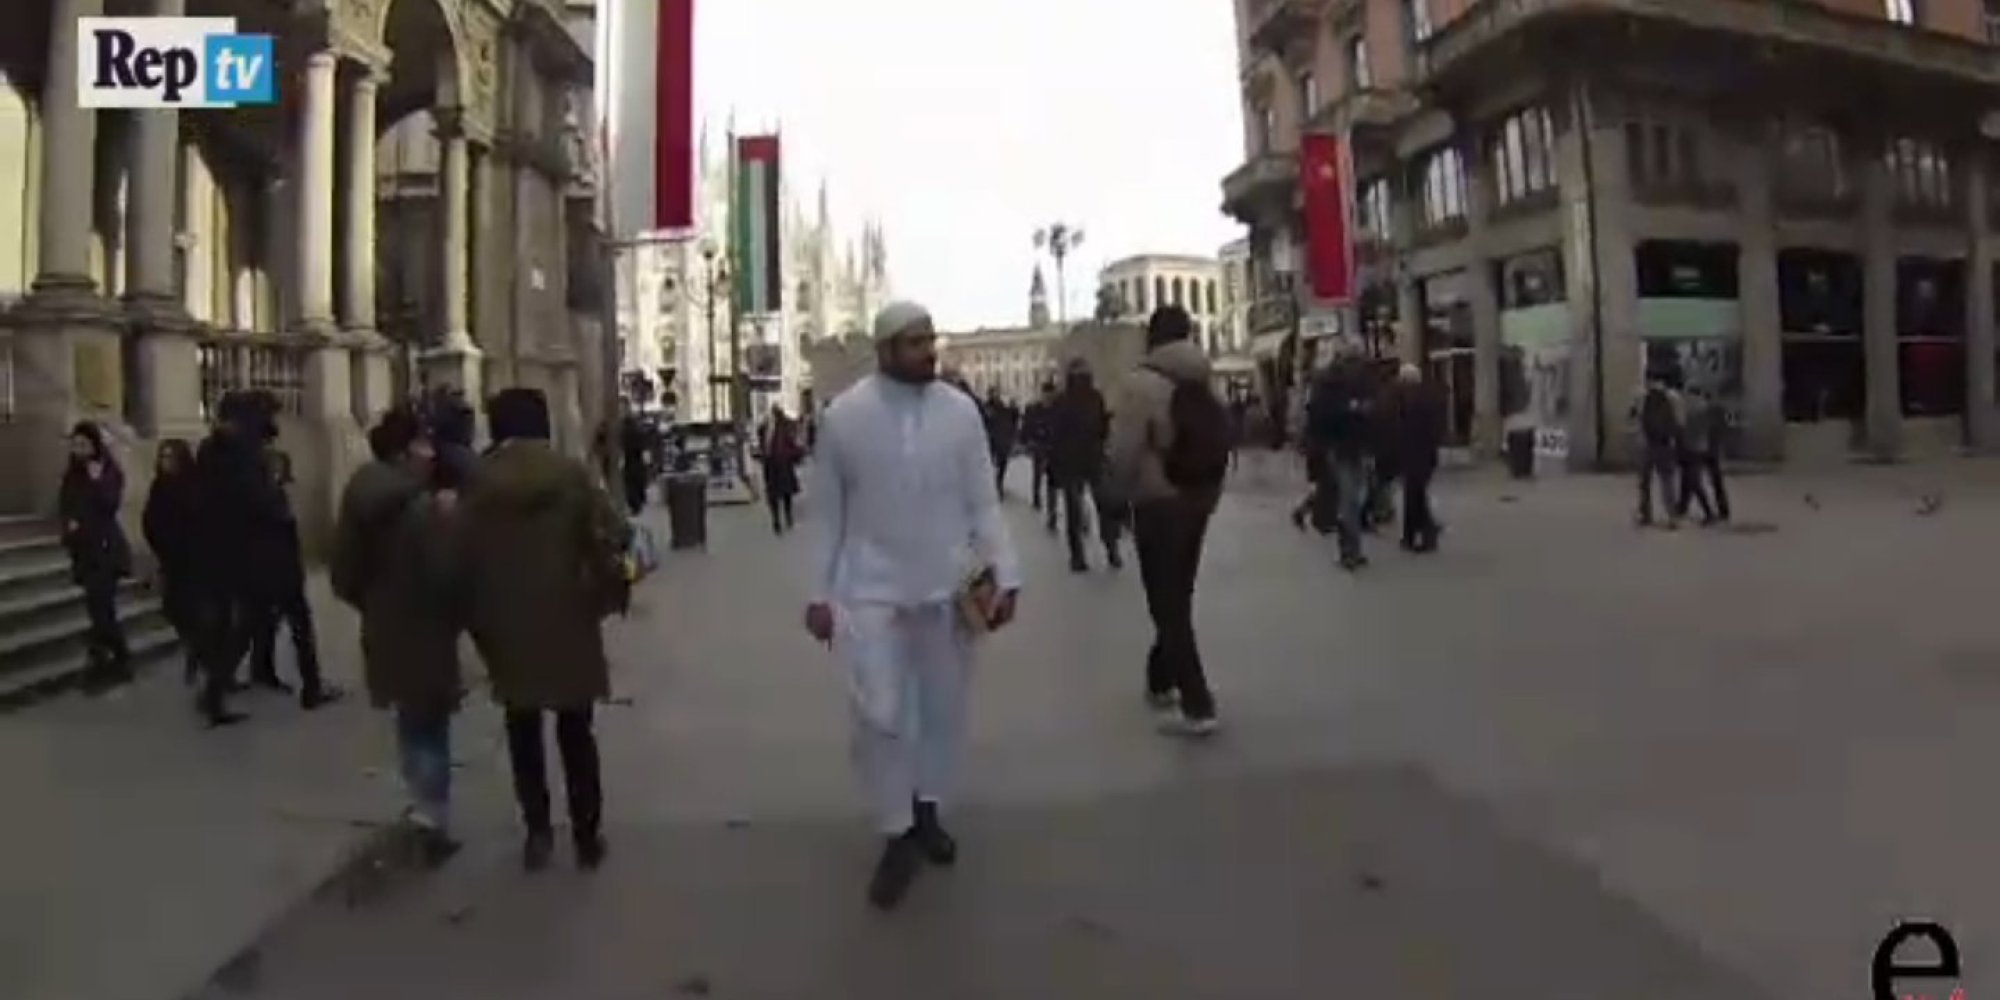 muslim single men in milan Muslim presence in italy dates back to the 9th century, when sicily came under  control of the  country, arguing that muslims can pray anywhere, and do not  need a mosque the construction of mosques had already been blocked in milan.